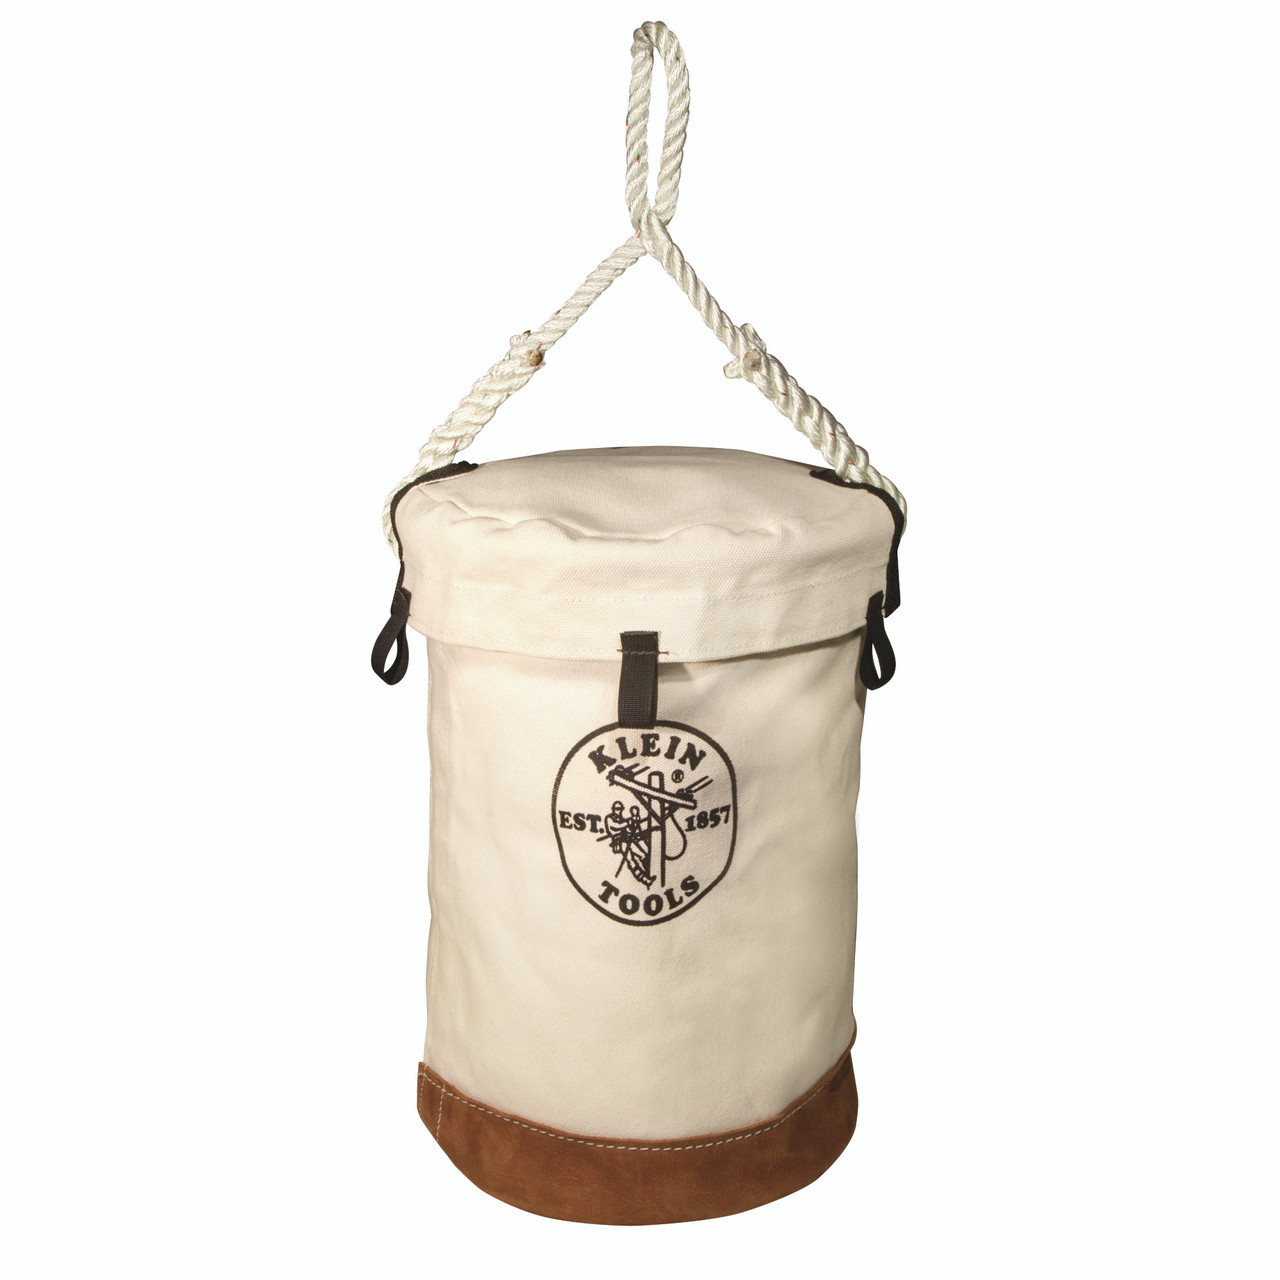 Klein 5104VT Leather Bottom Bucket with Top